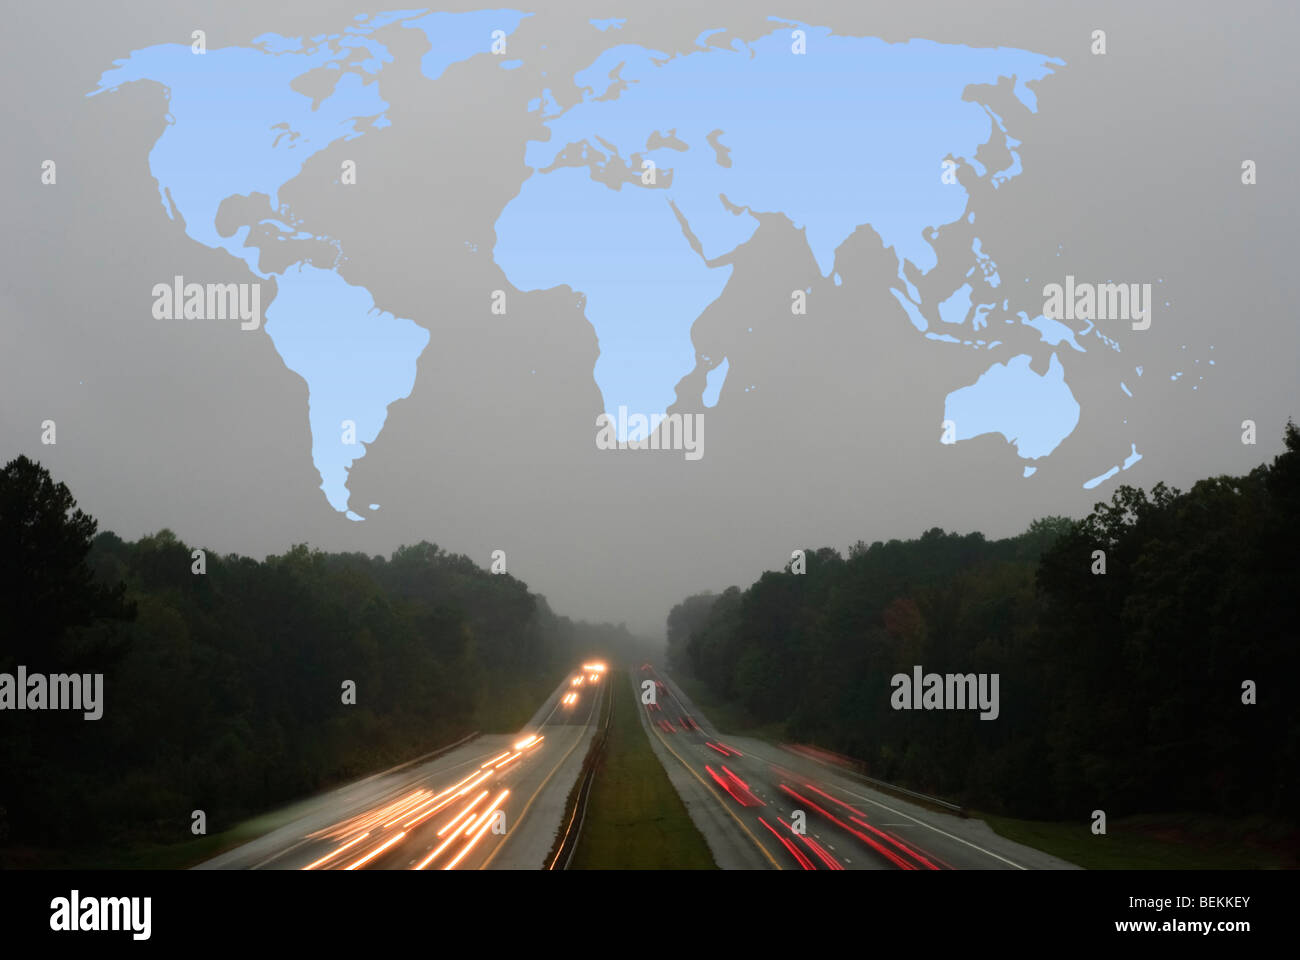 blue outline of a world map above a highway with cars on a grey, rainy evening - Stock Image